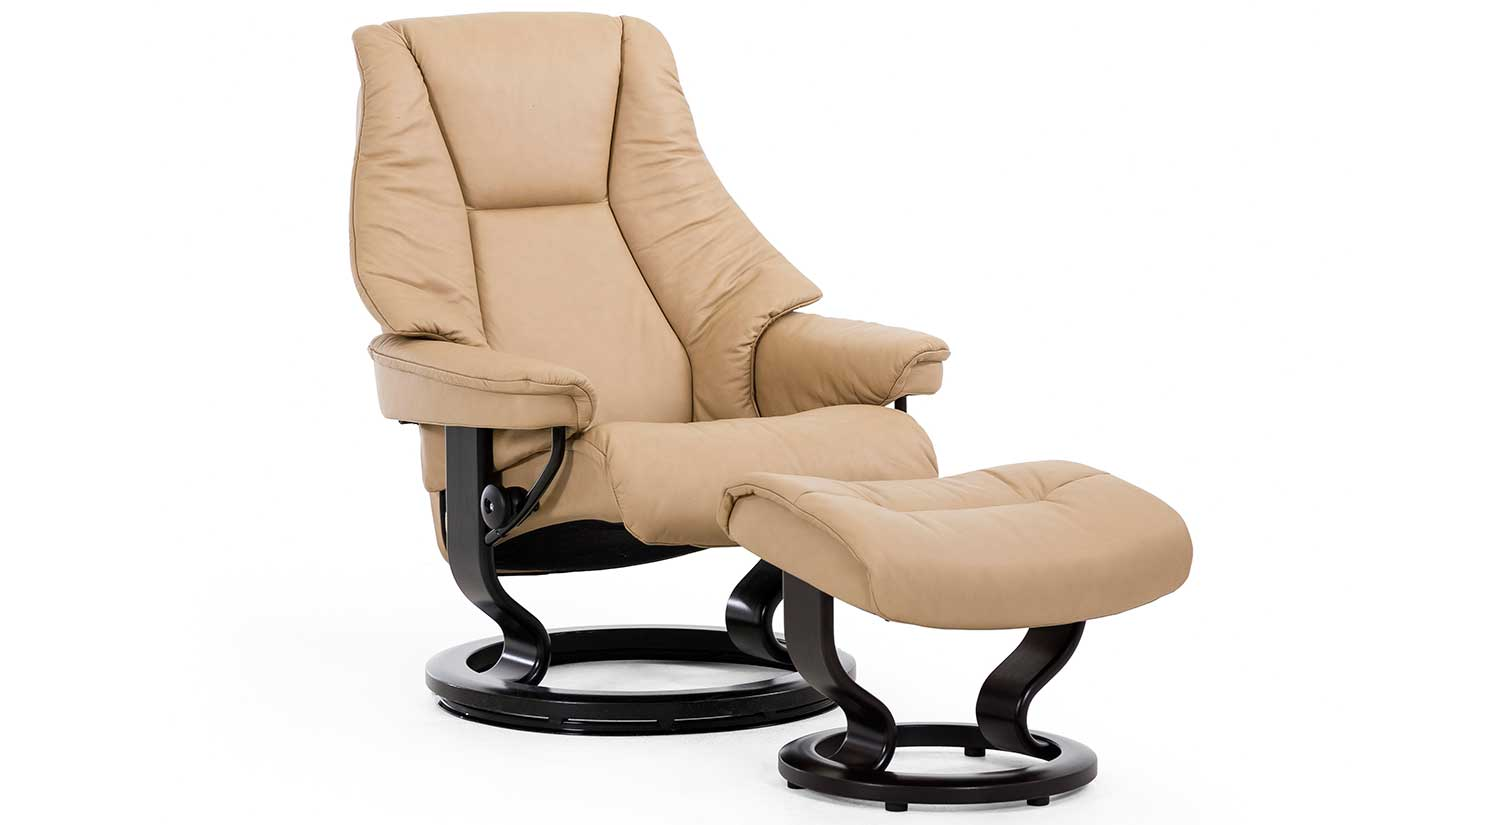 Circle Furniture  Live Stressless Chair and Ottoman